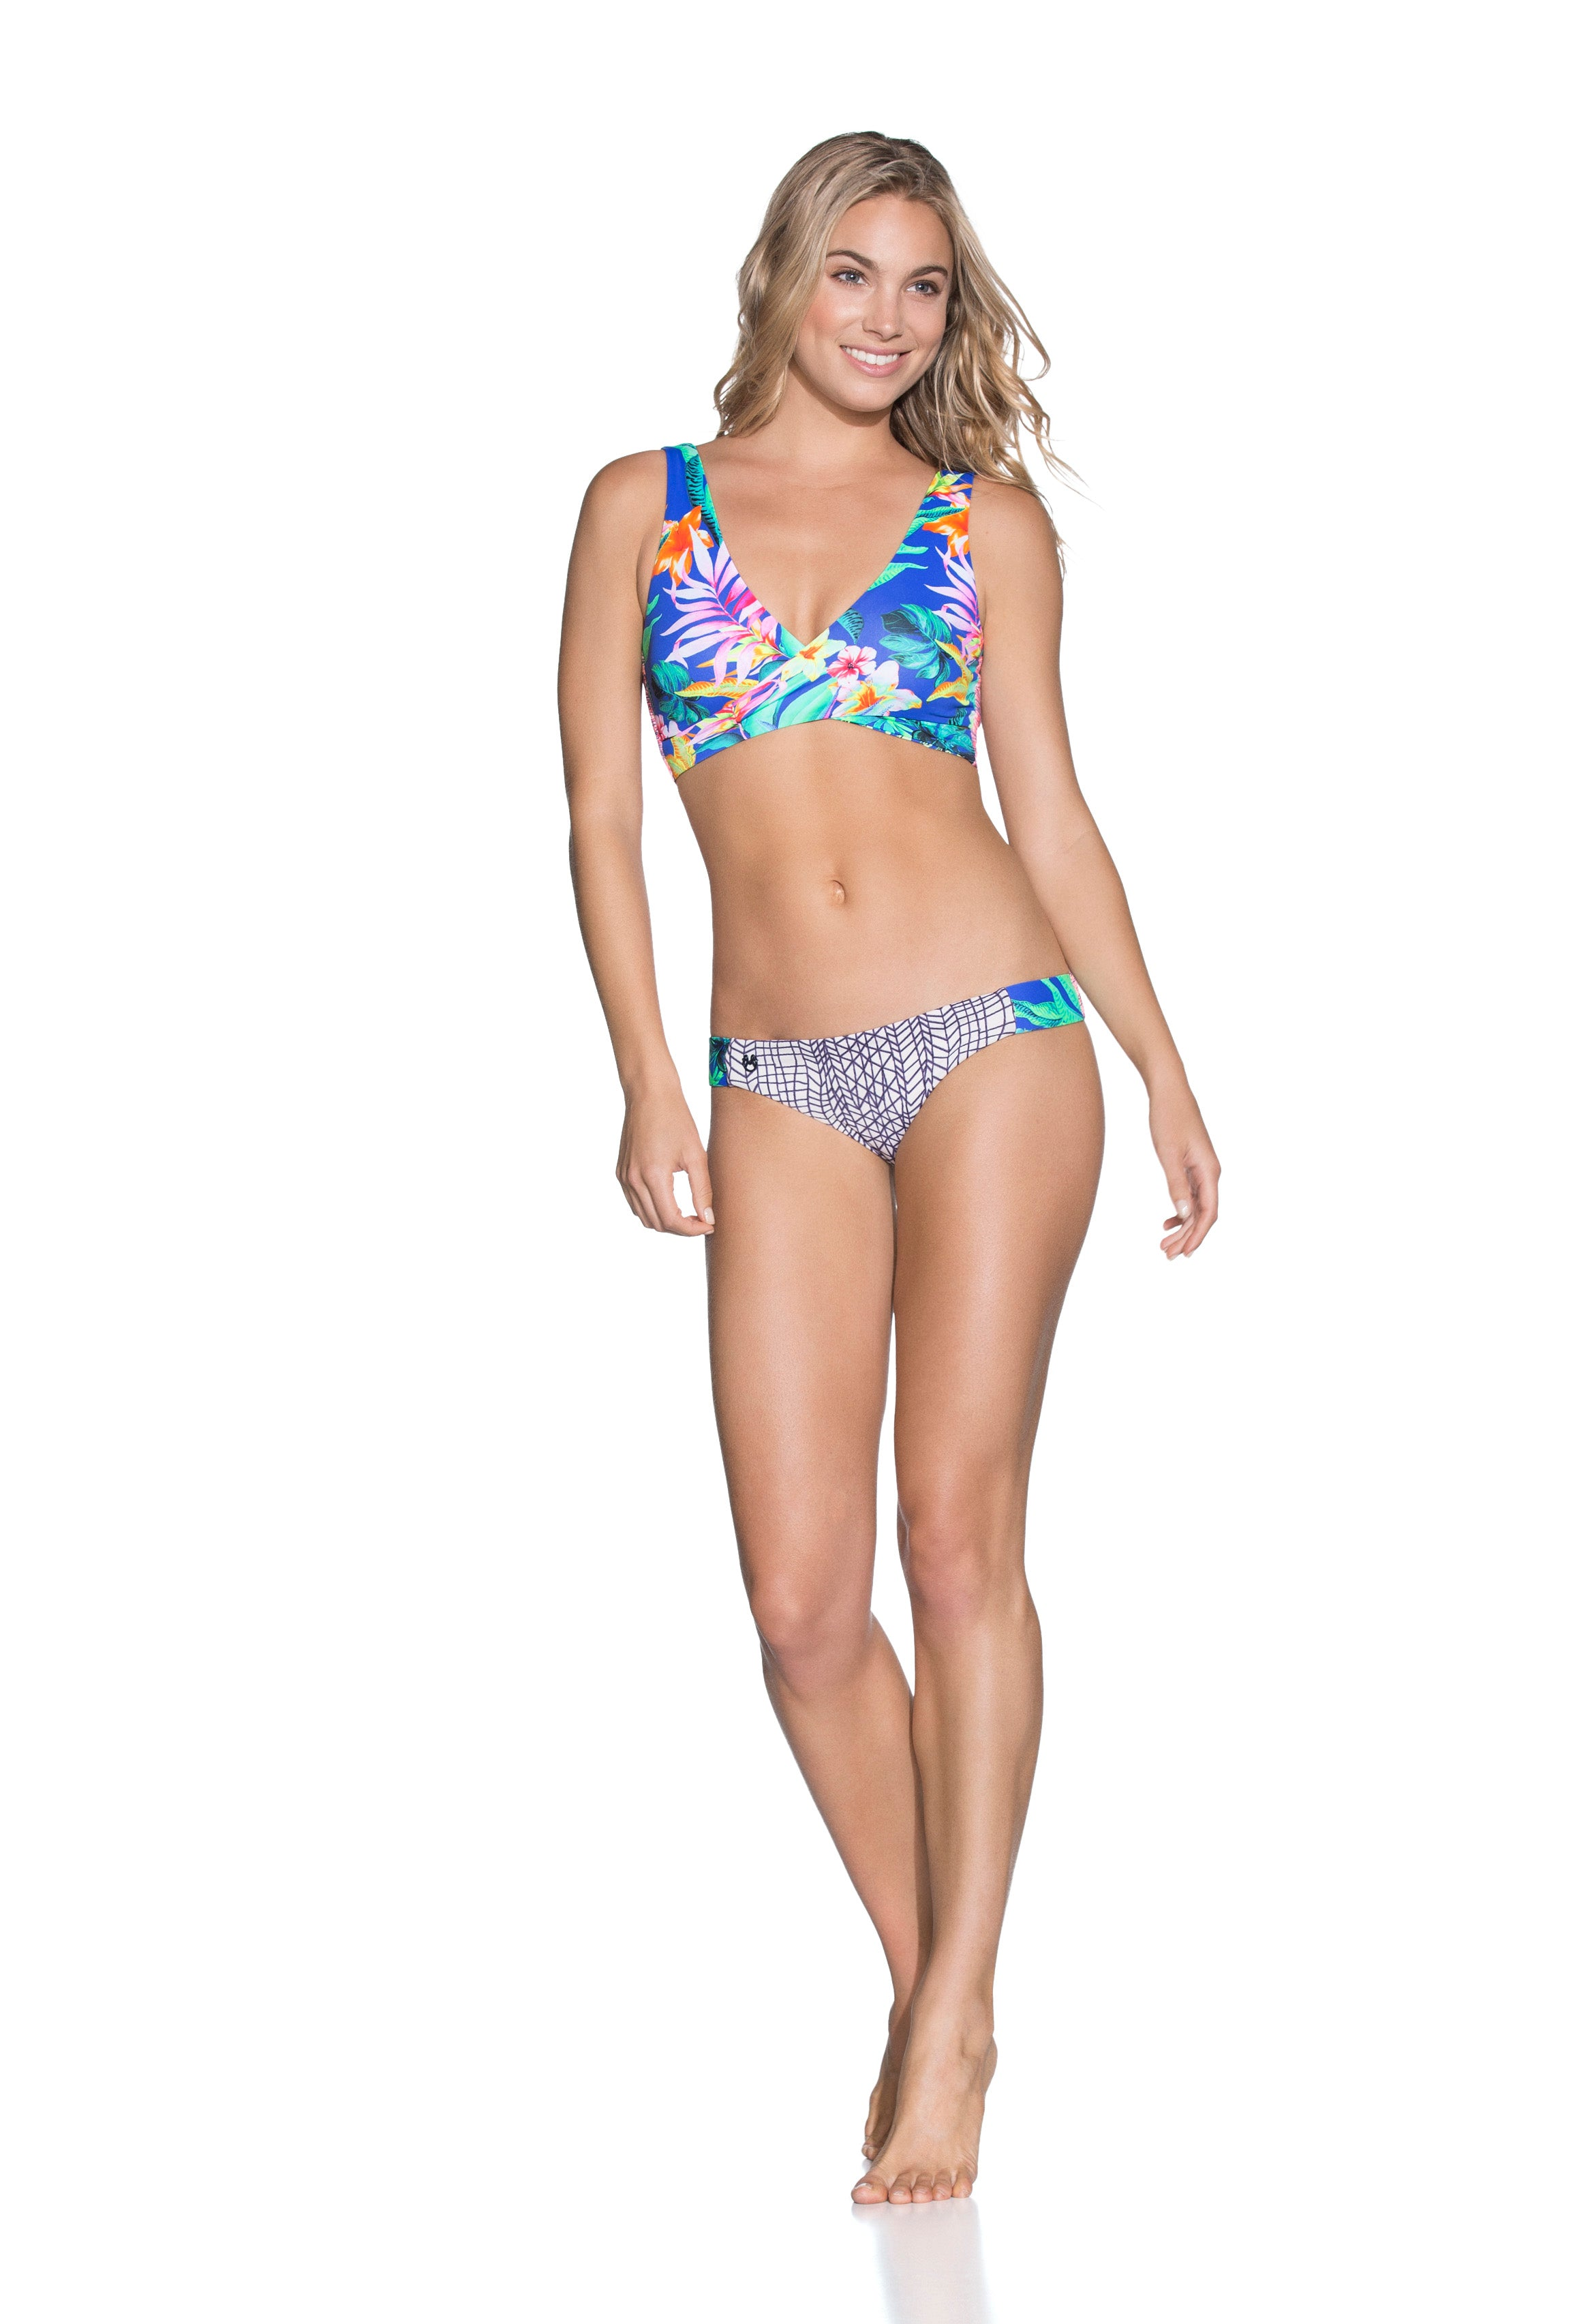 Women - Apparel - Swimwear - Bikinis Separates:Maaji:Festival Fleur Bottom:WKND threads